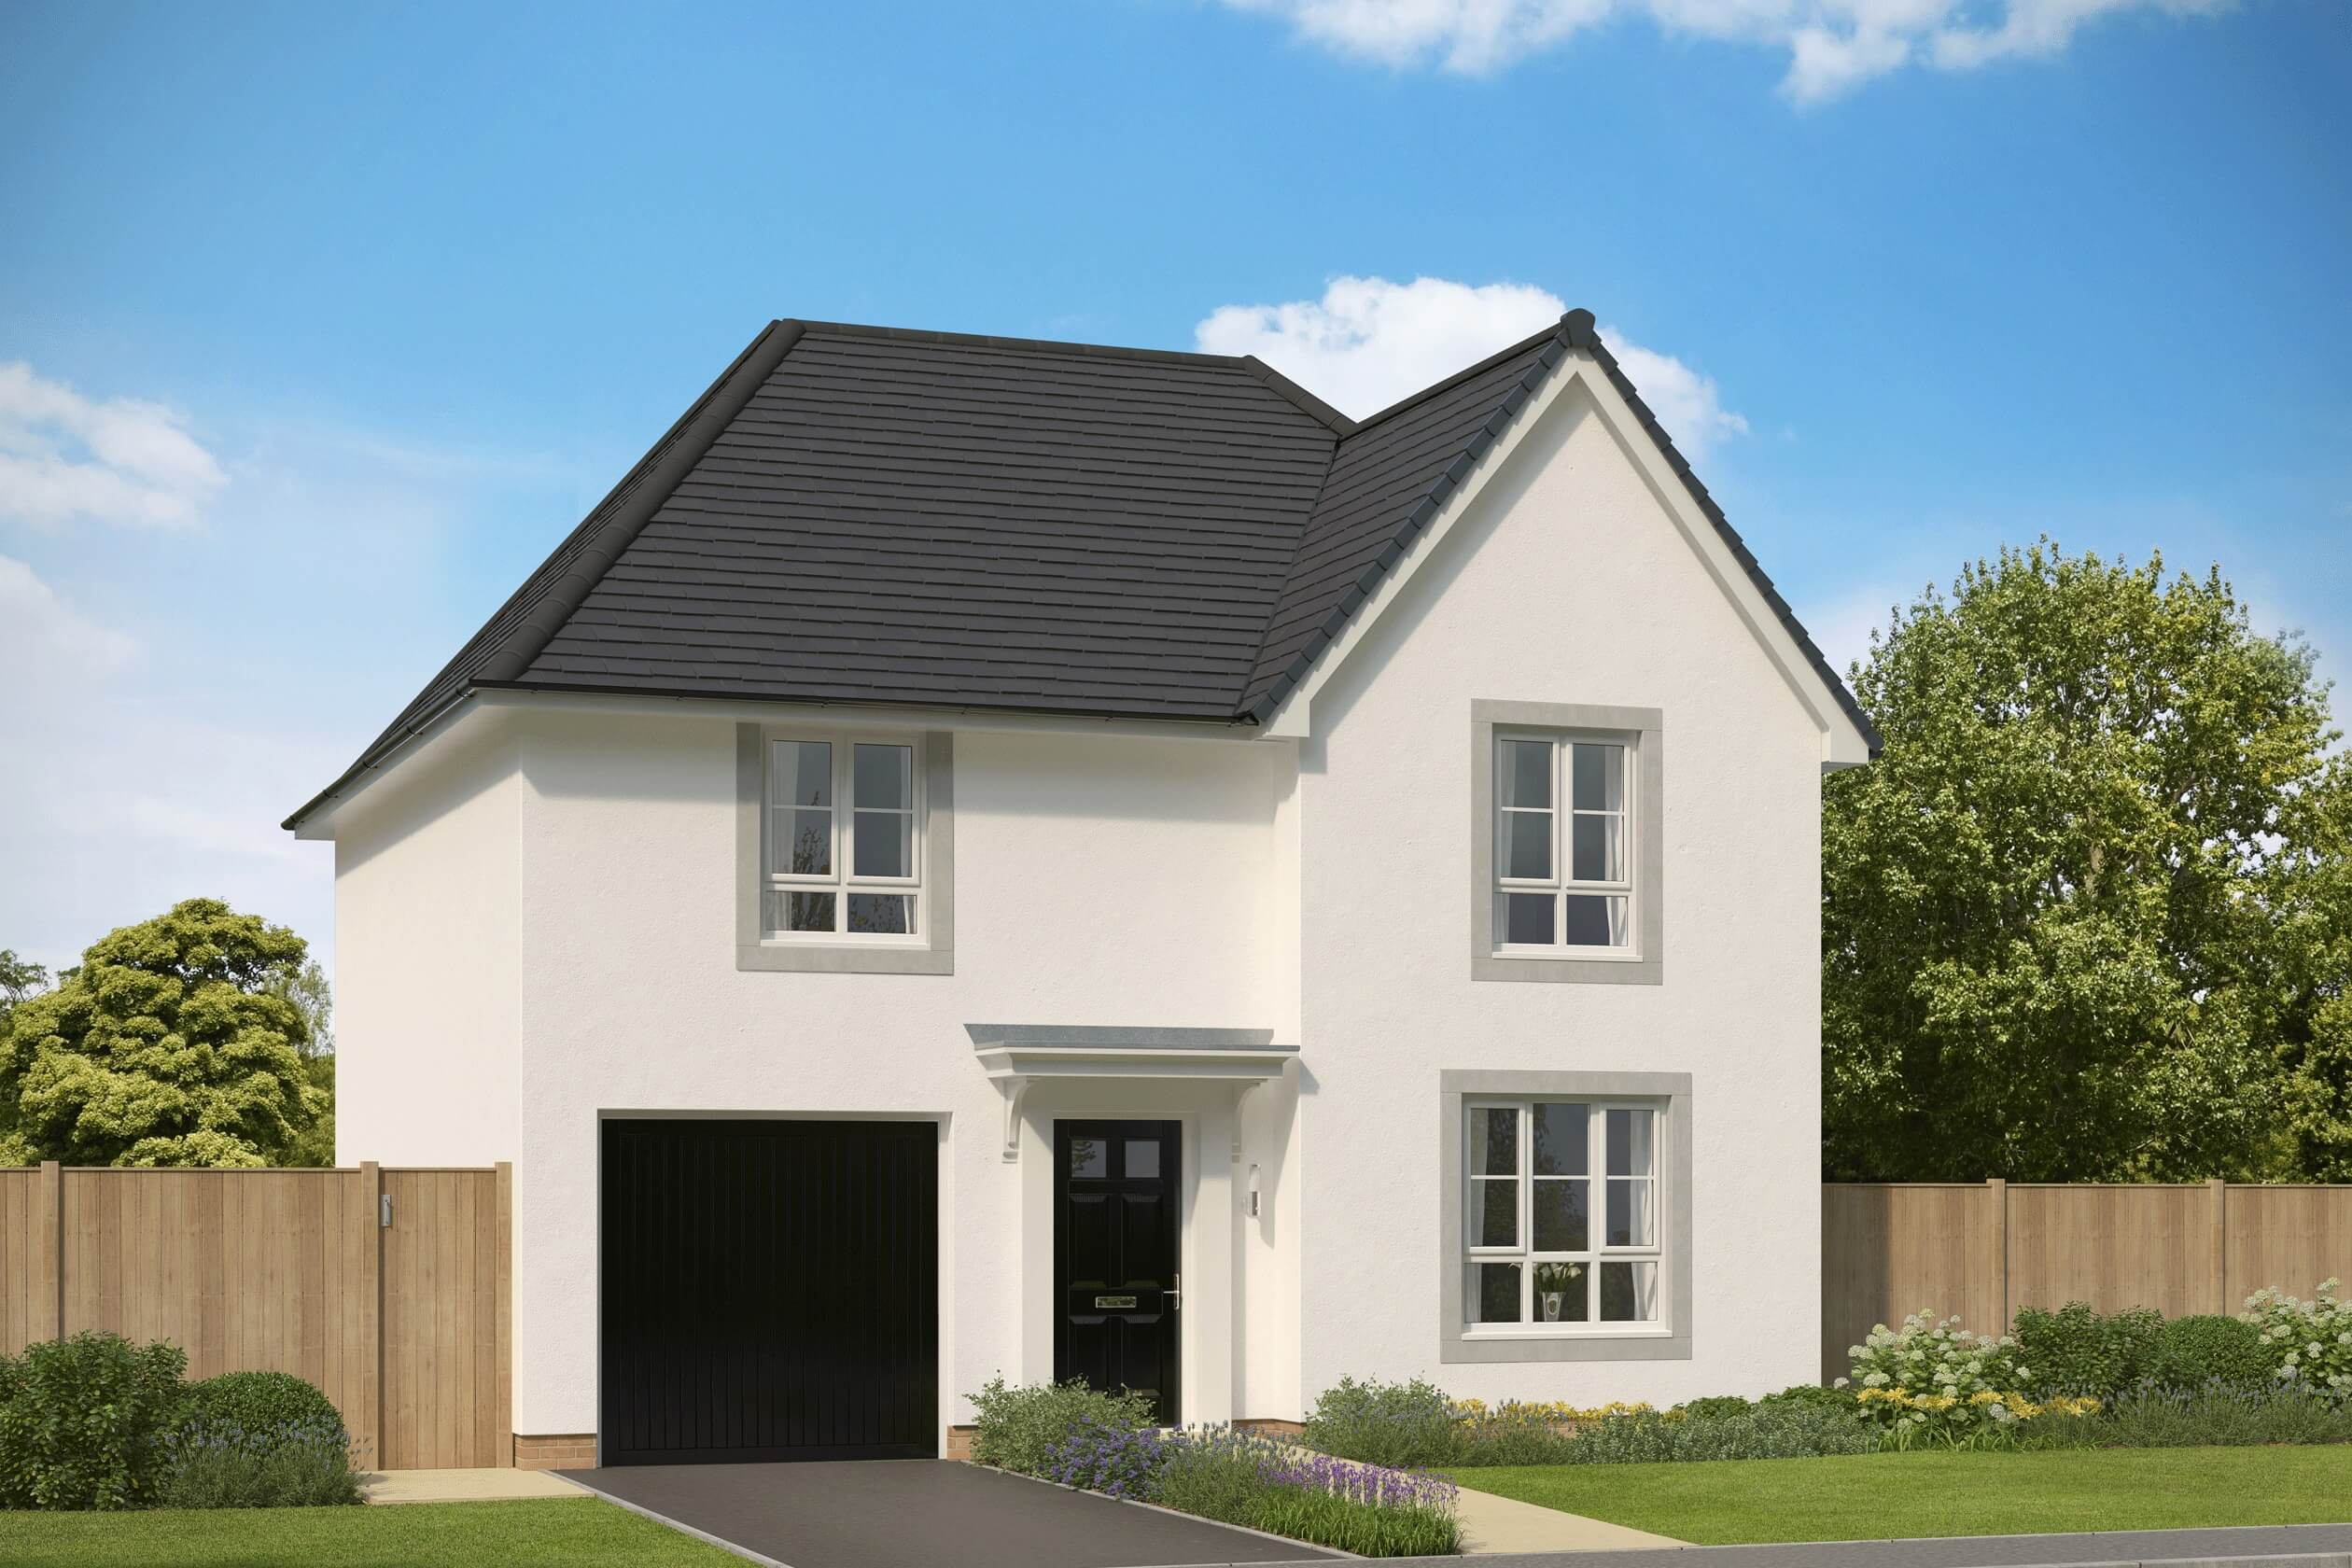 H6733-Ness-Castle-Phase-2-Rothes-hipped-Caledonia-CGI-External